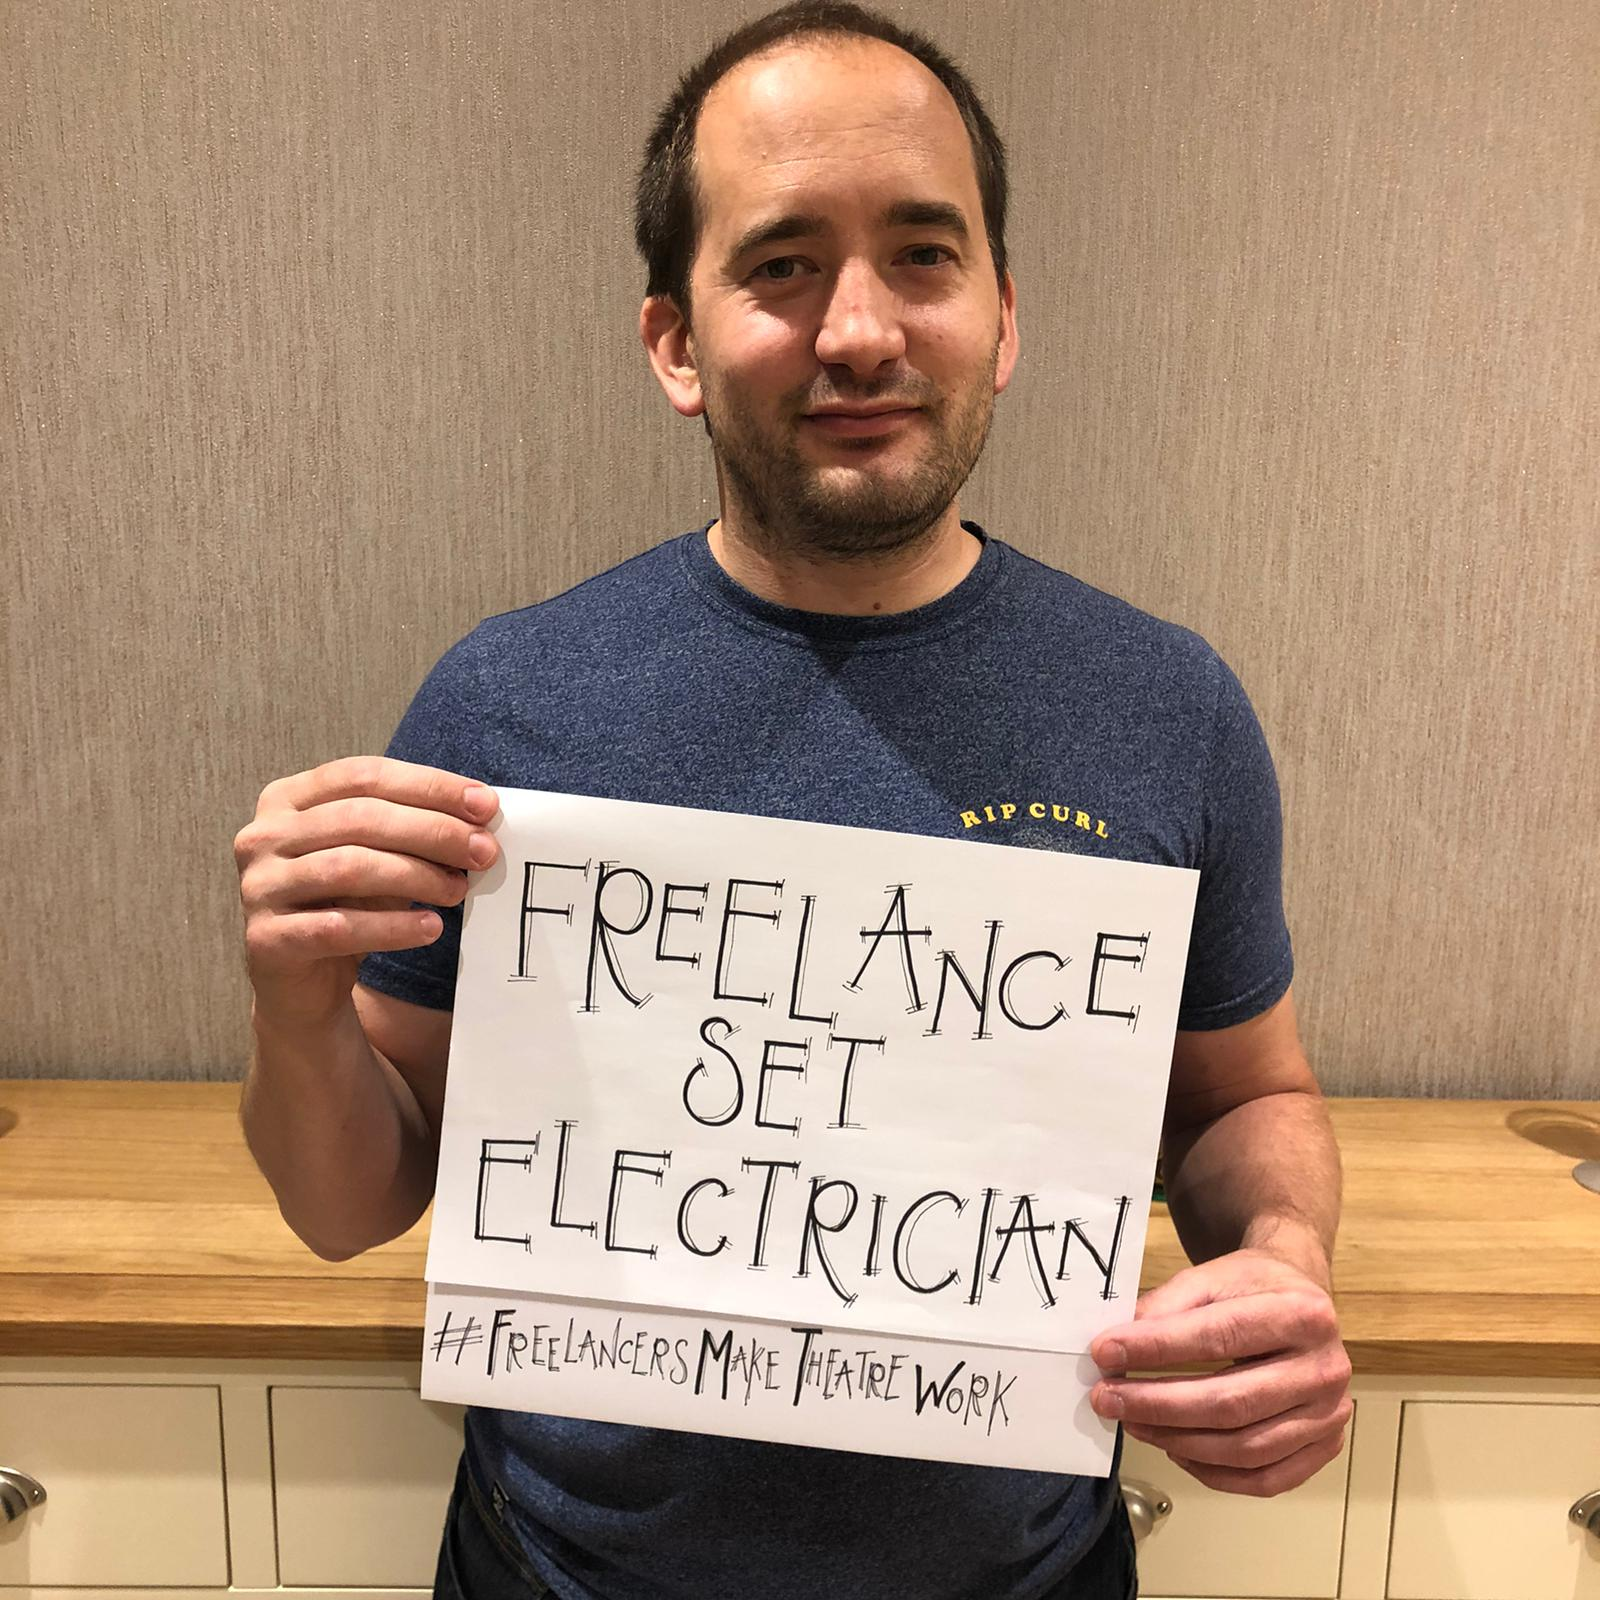 Photo of a freelance electrician holding up a sign